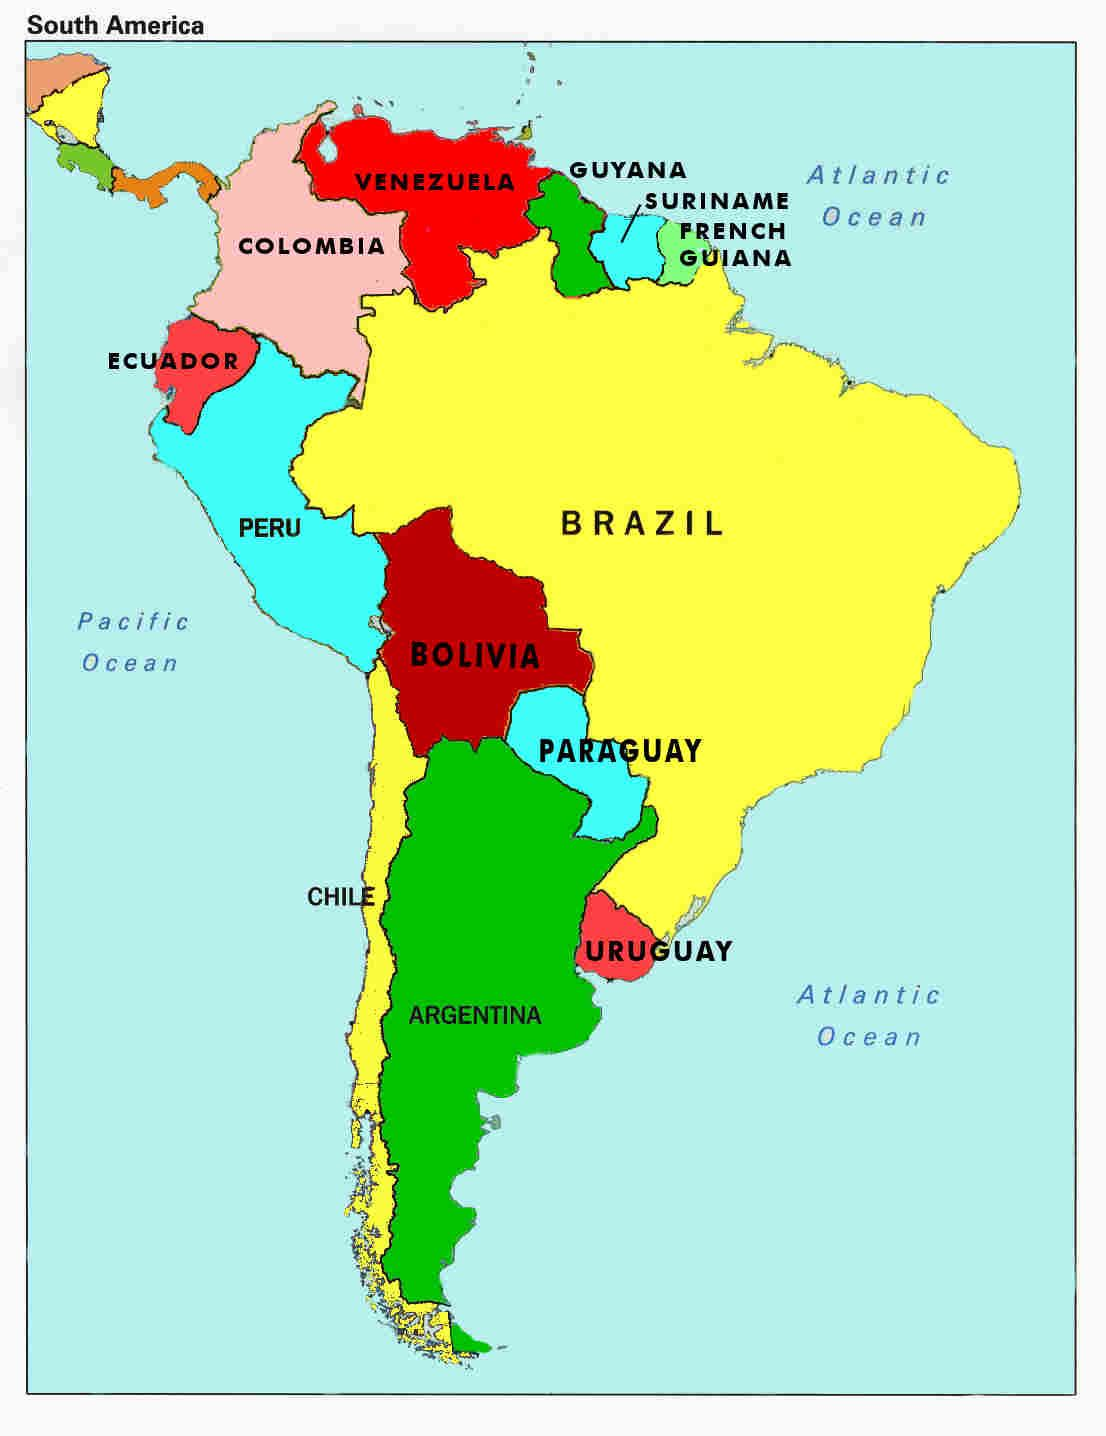 South America Country Map map of south america countries and capitals | Map of South America